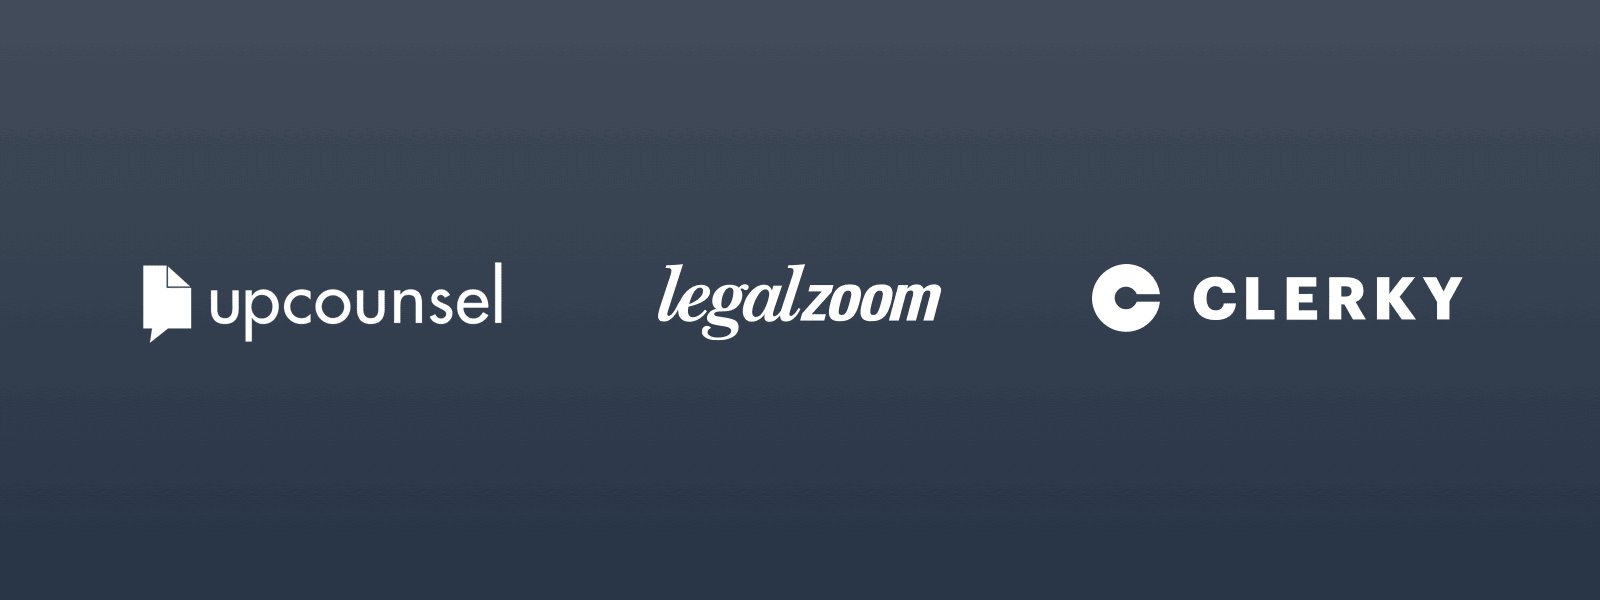 Best Filmmaking Software and Tools - Upcounsel - Legalzoom - Clerky